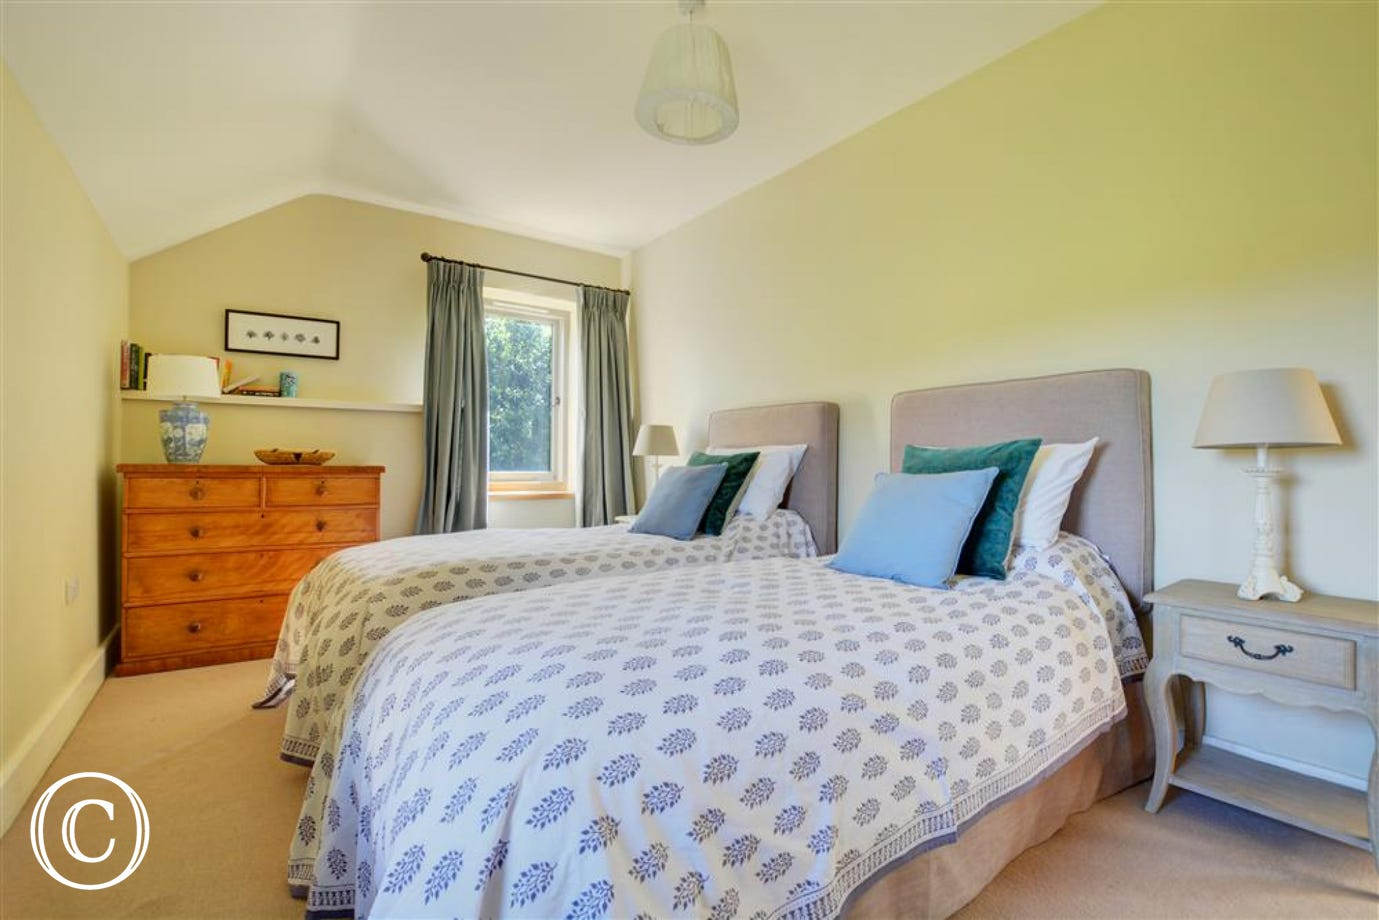 Bedroom four has twin beds, which can be converted into a super king